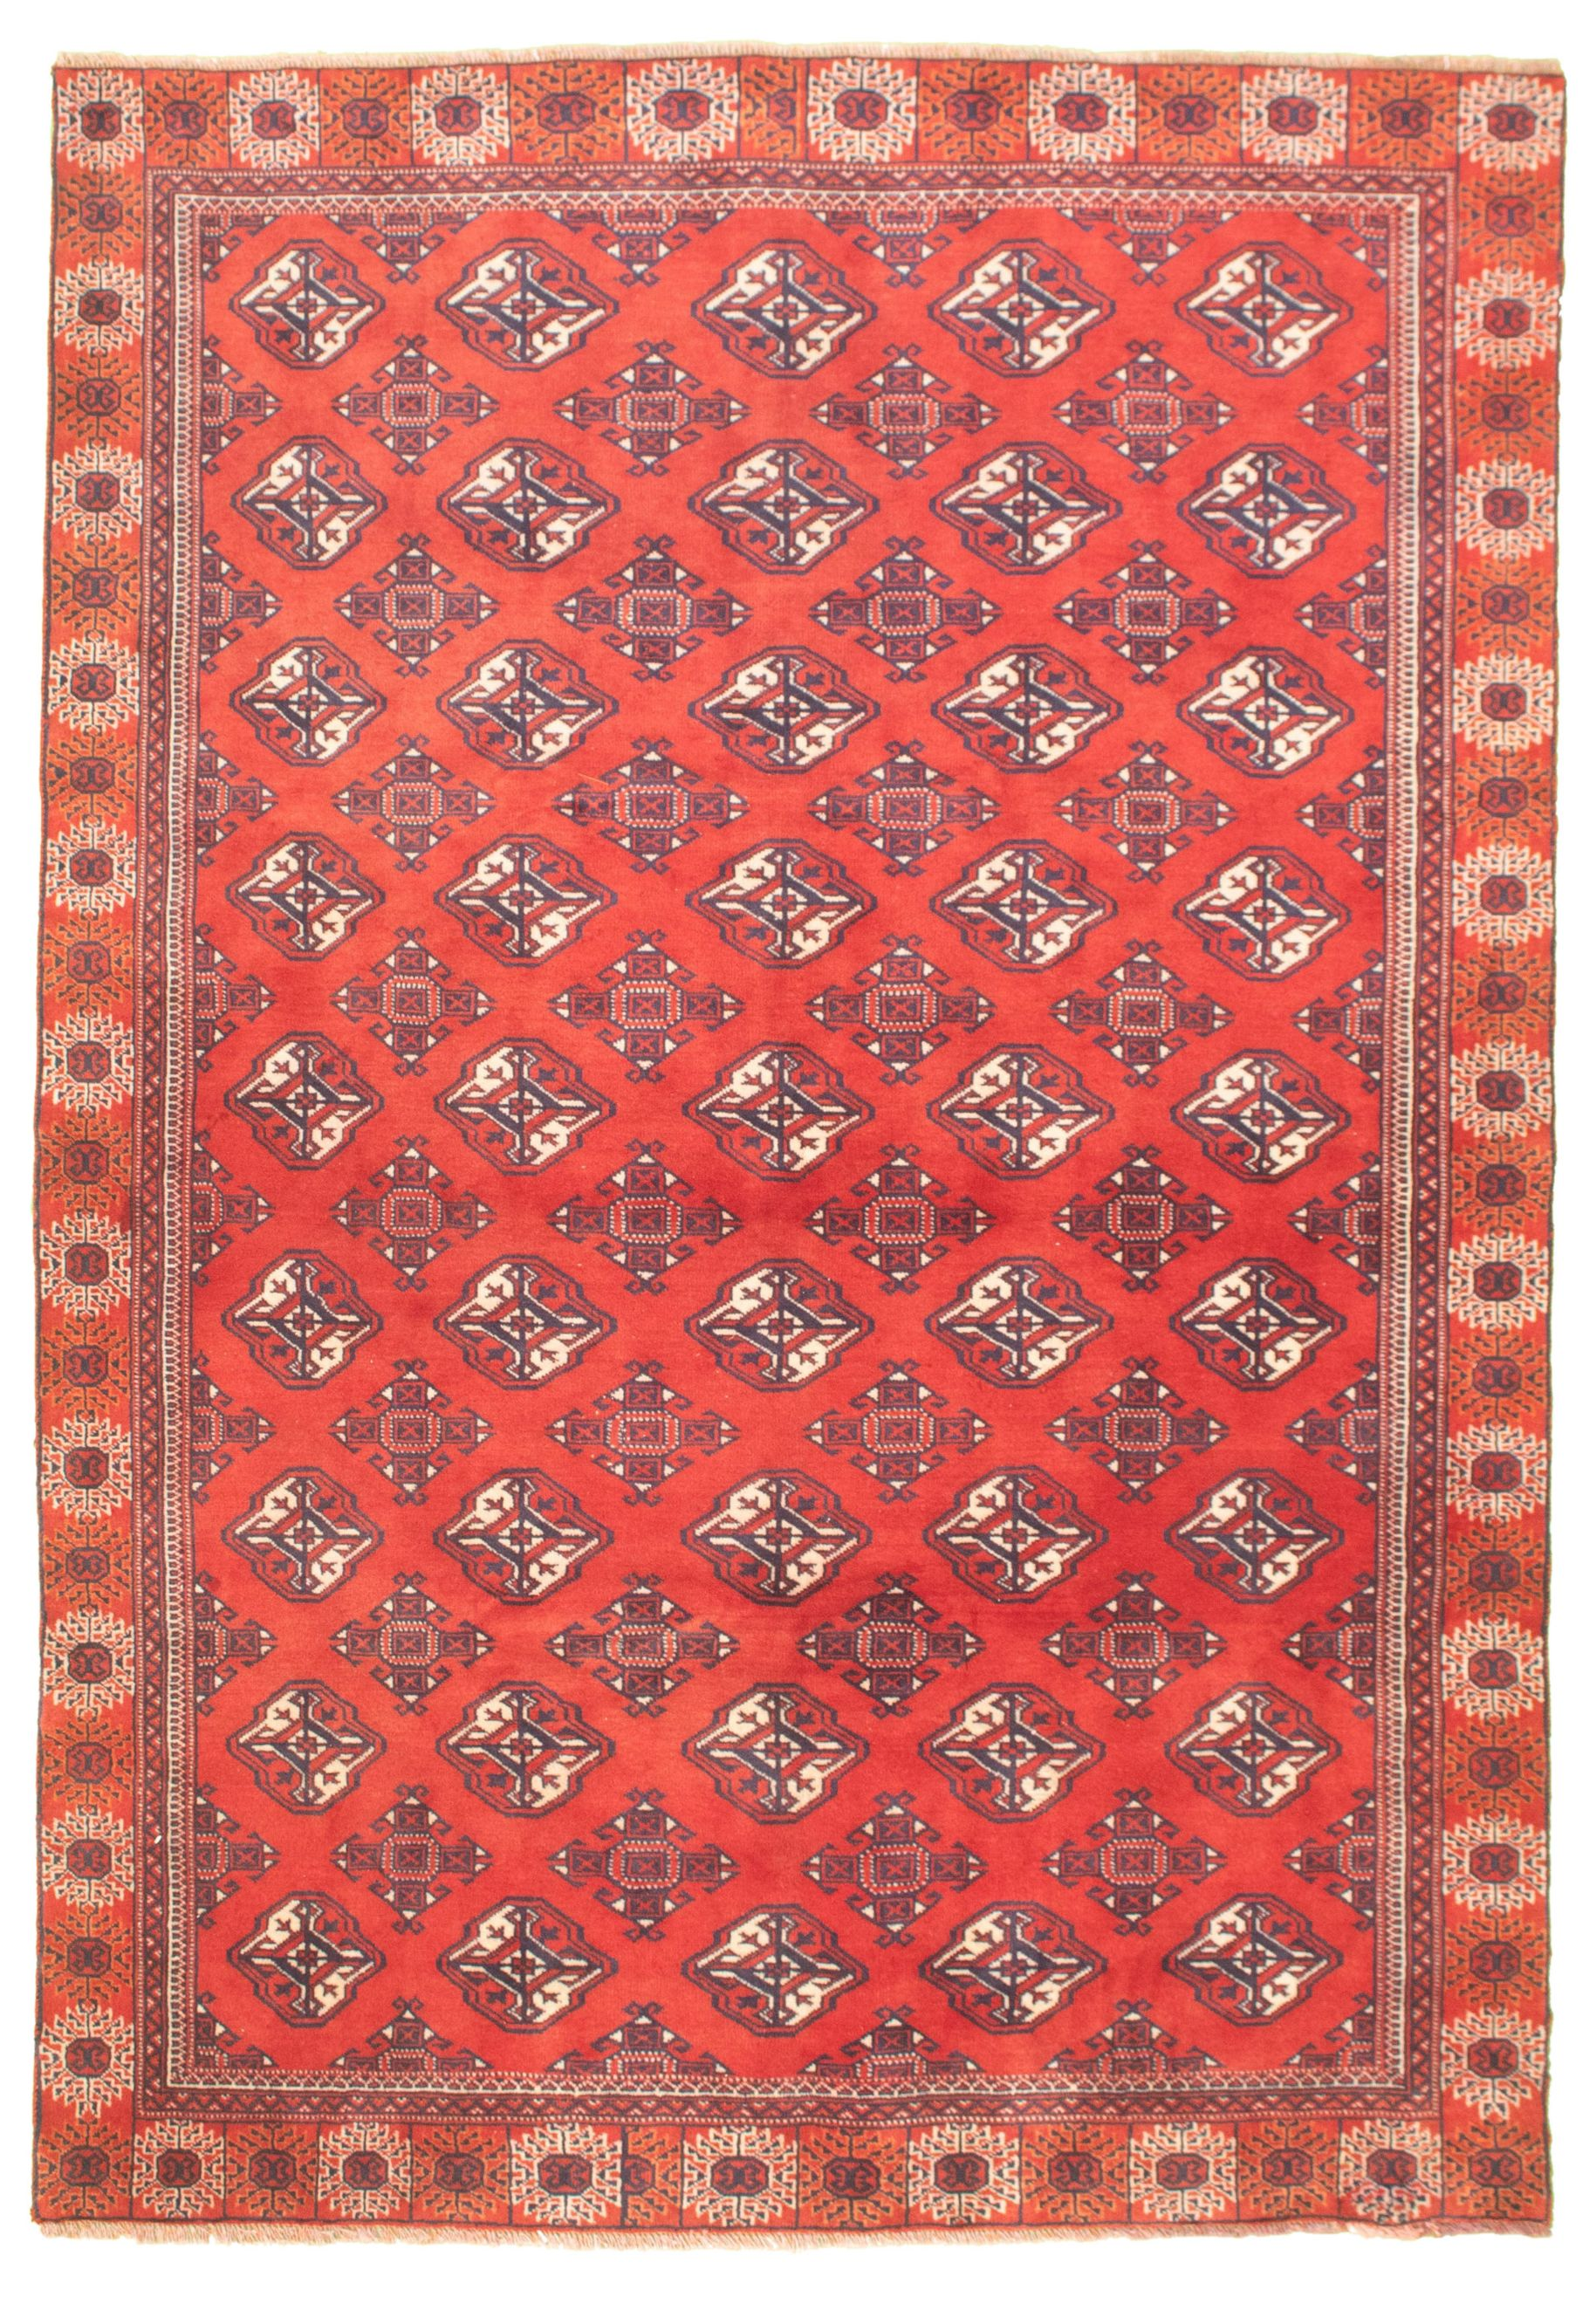 """Hand-knotted Shiravan Bokhara Red Wool Rug 5'10"""" x 8'8"""" Size: 5'10"""" x 8'8"""""""